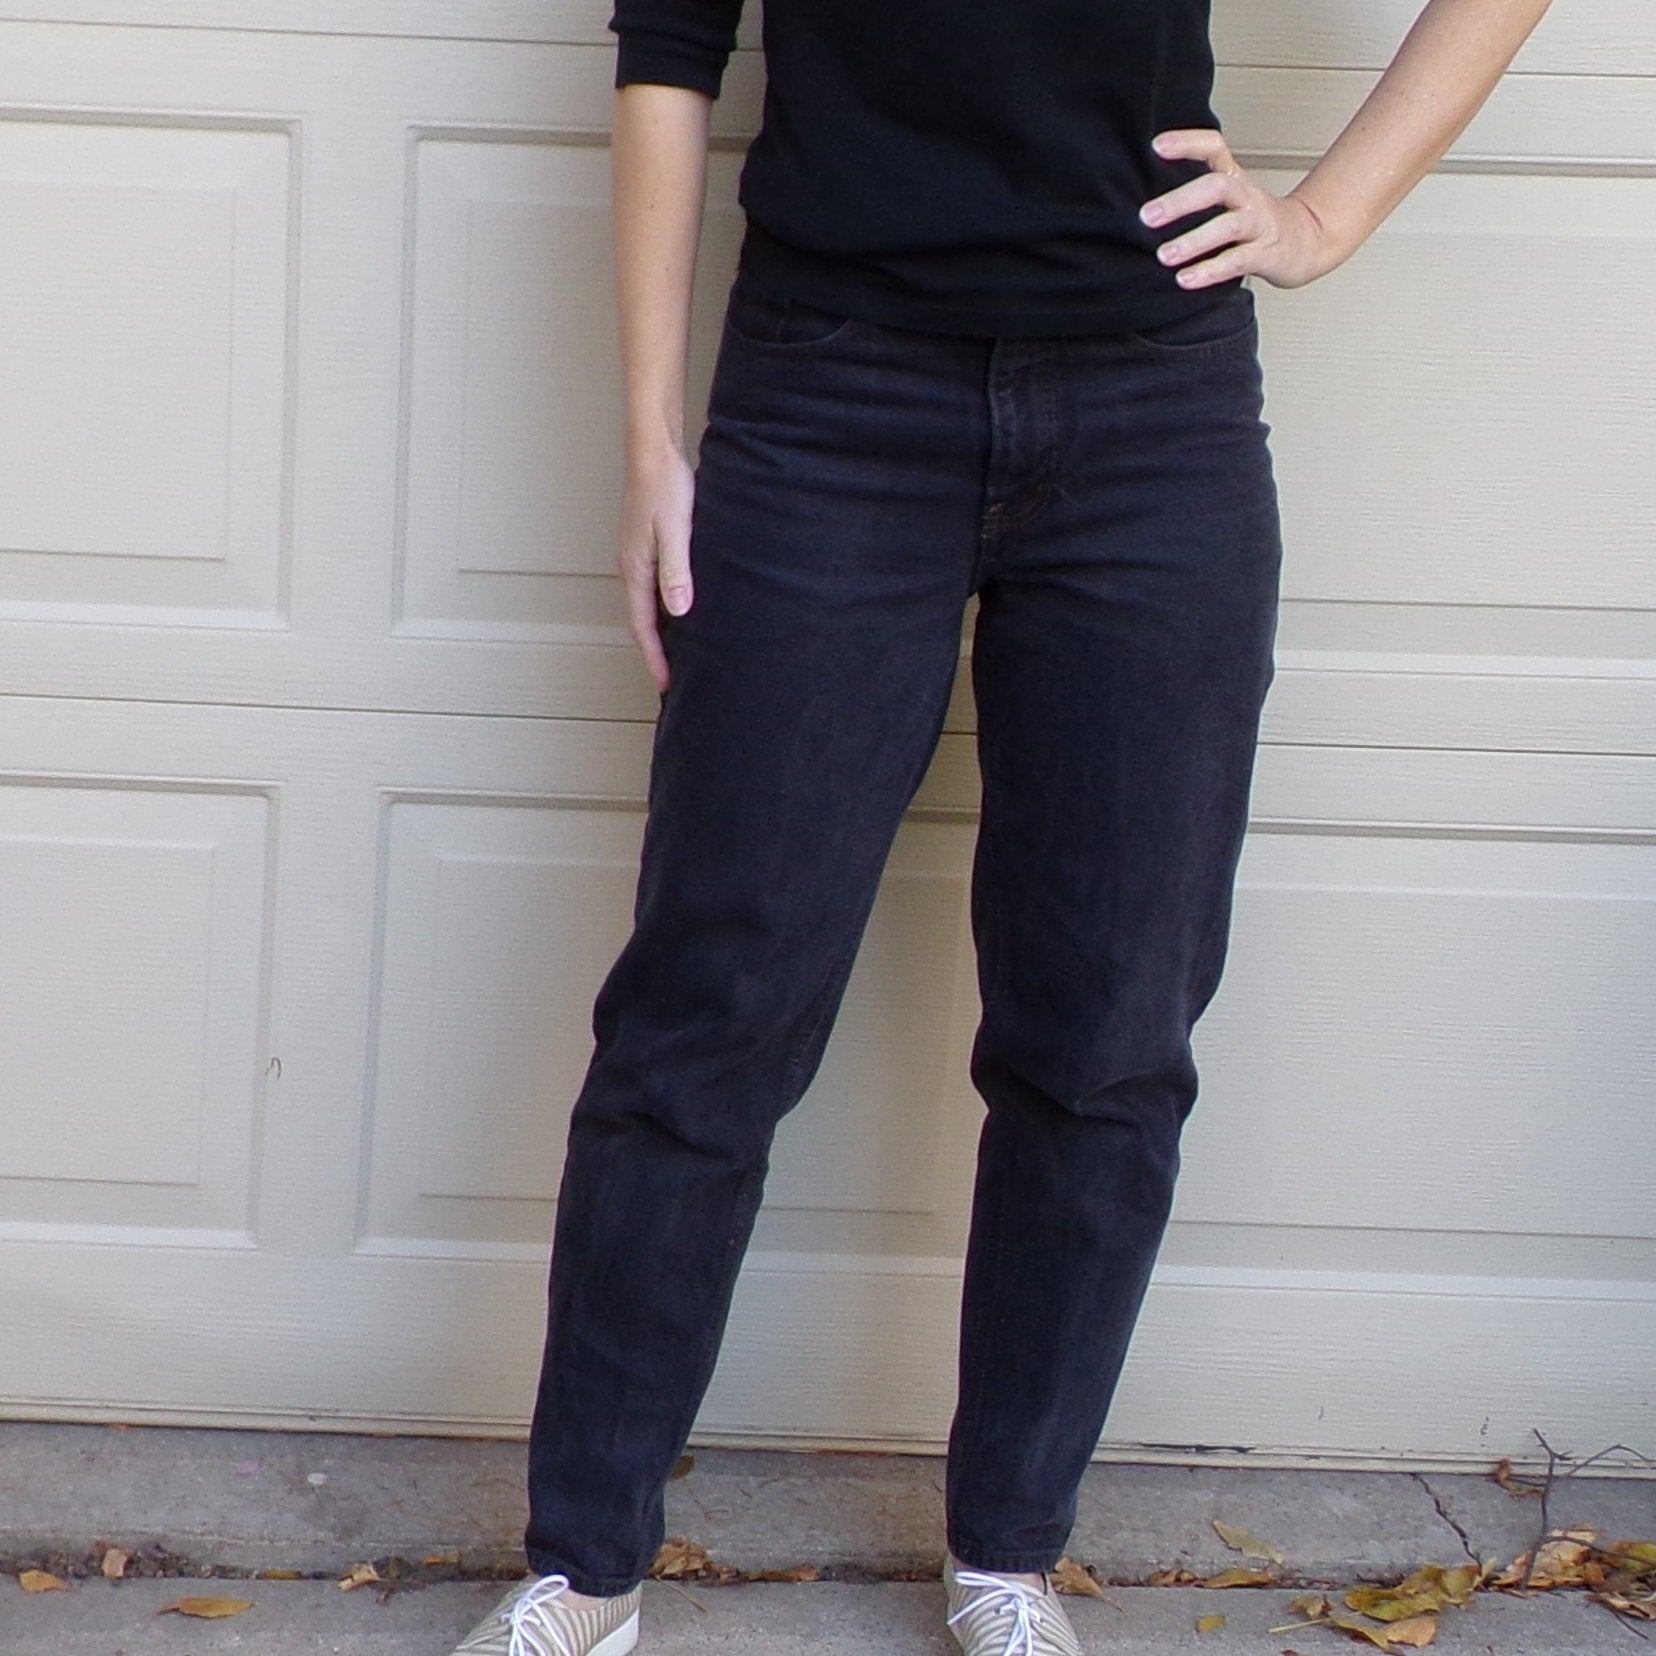 ESPRIT HIGH WAISTED jeans light black rise 80's 90's S (K2)